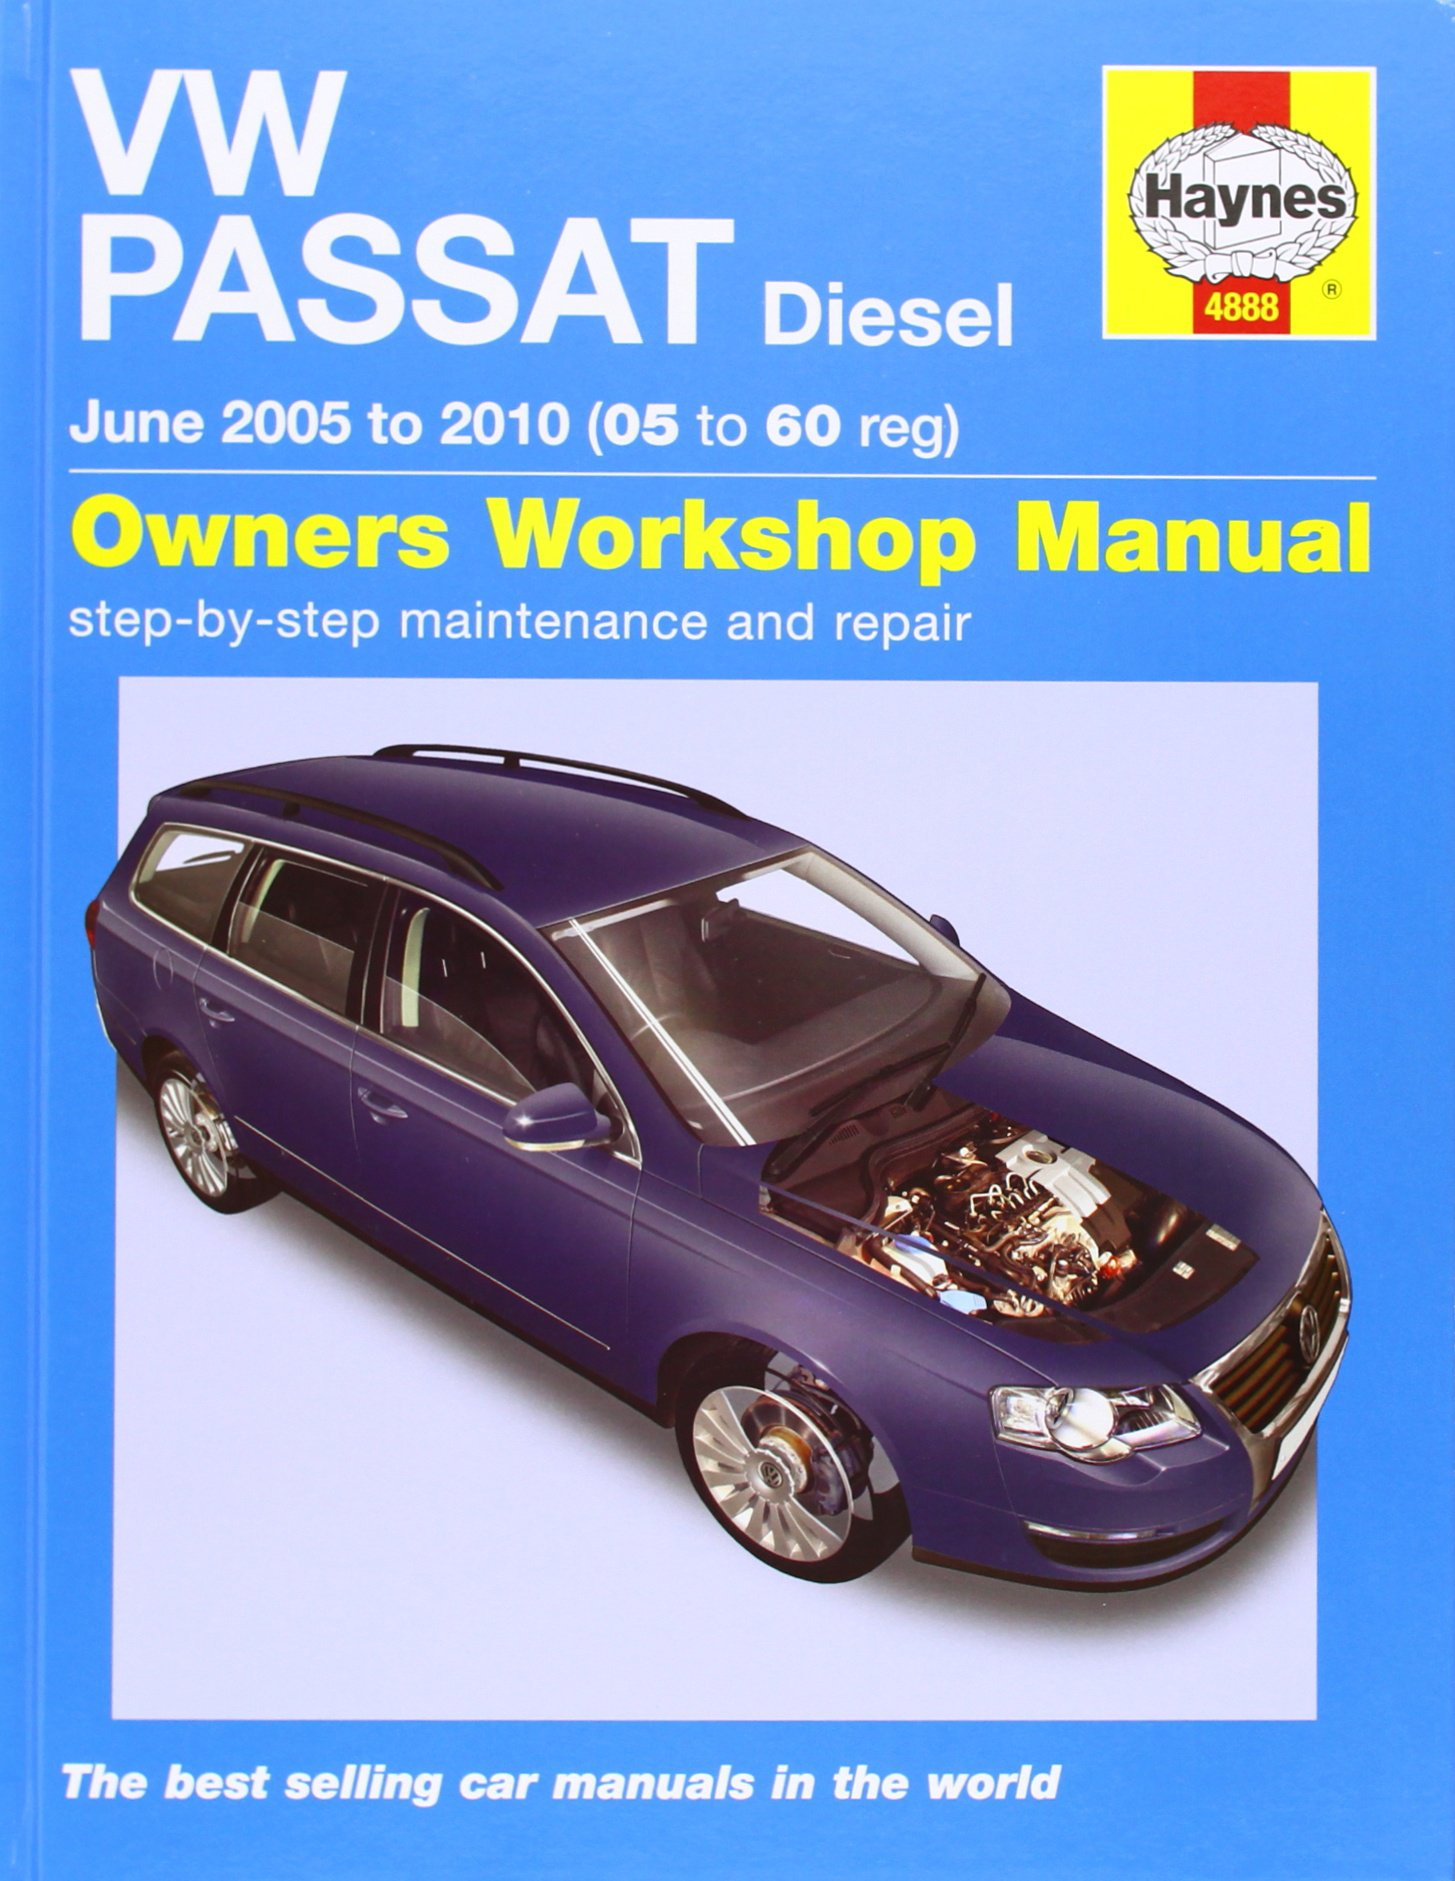 vw passat diesel service and repair manual 2005 to 2010 service rh amazon co uk passat b6 workshop manual vw passat b6 workshop manual free download